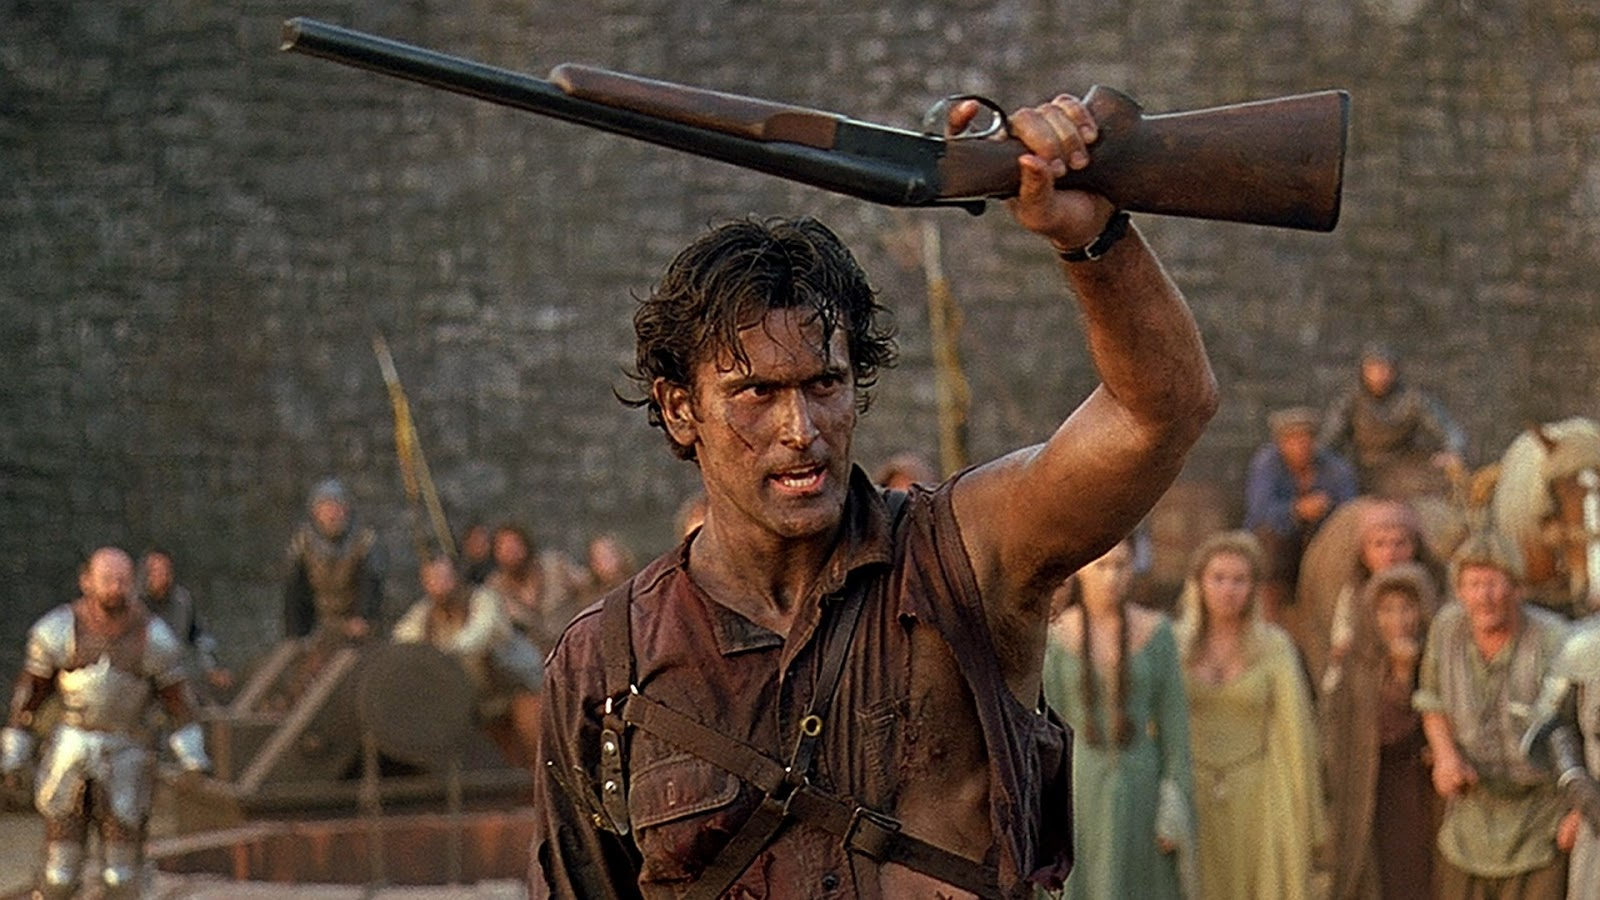 Ash-Bruce-Campbell-in-Army-of-Darkness-1992-This-is-my-Boomstick